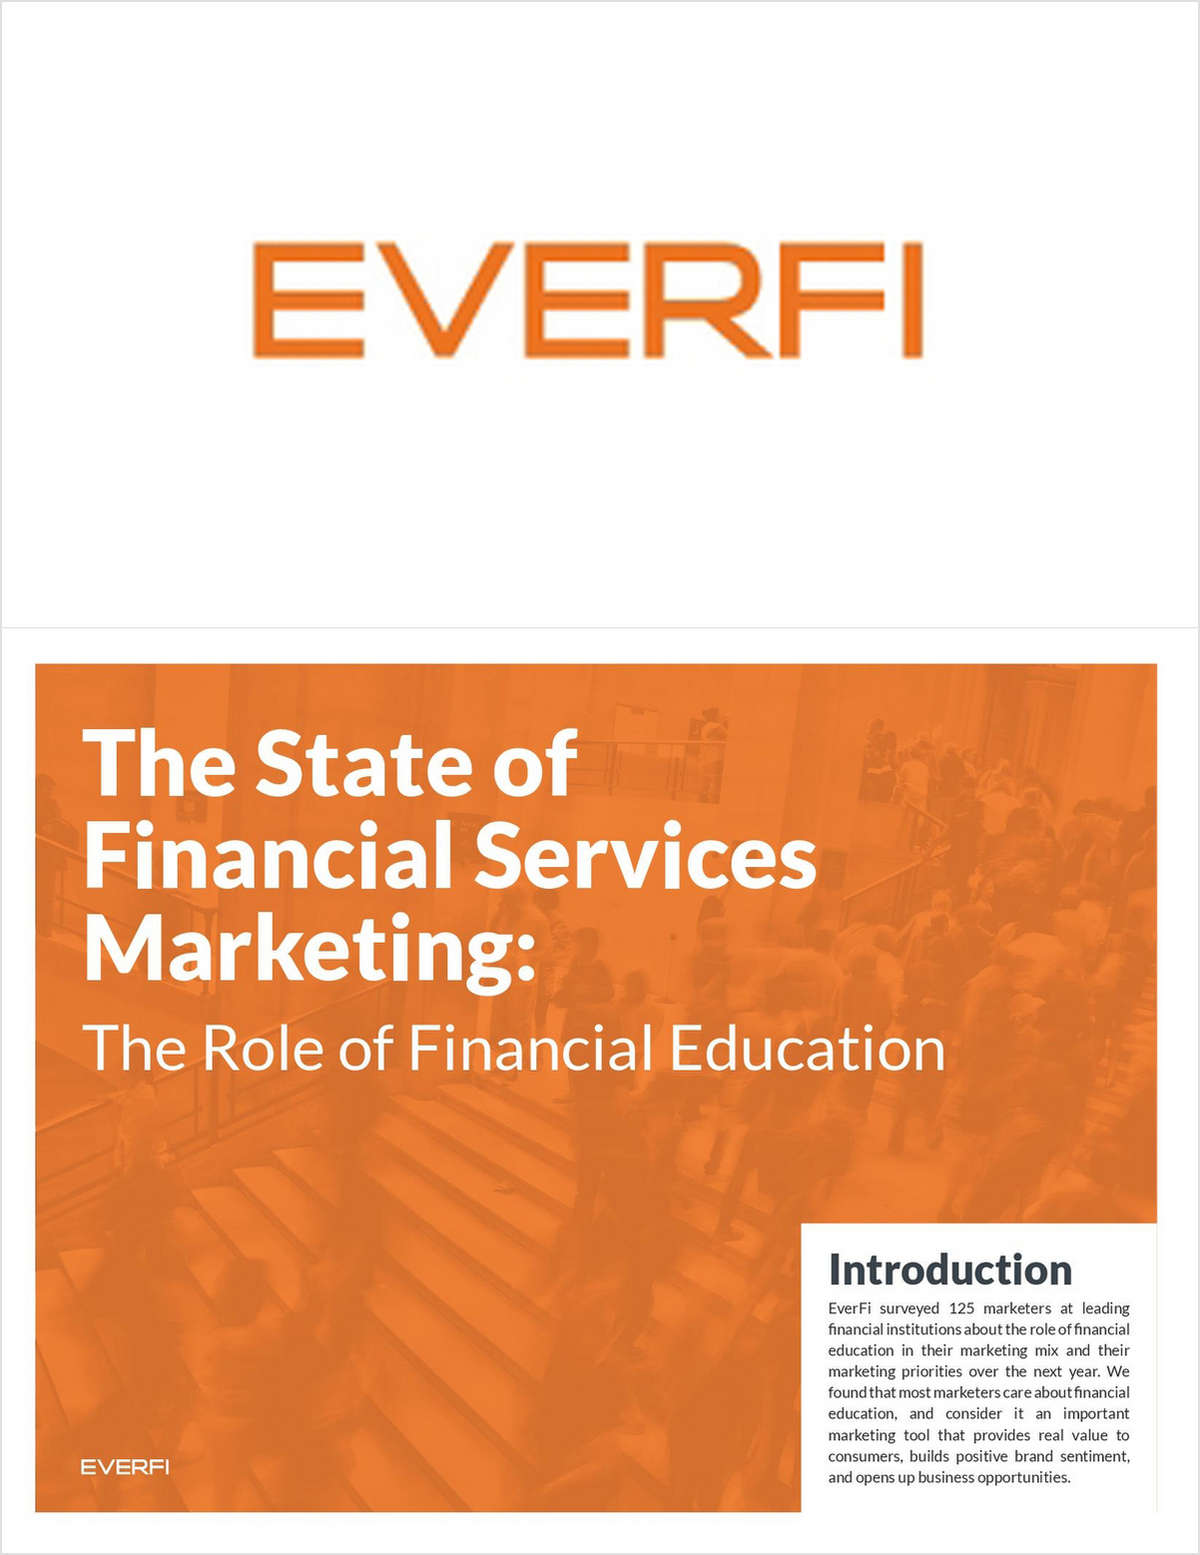 The State of Financial Services Marketing: The Role of Financial Education